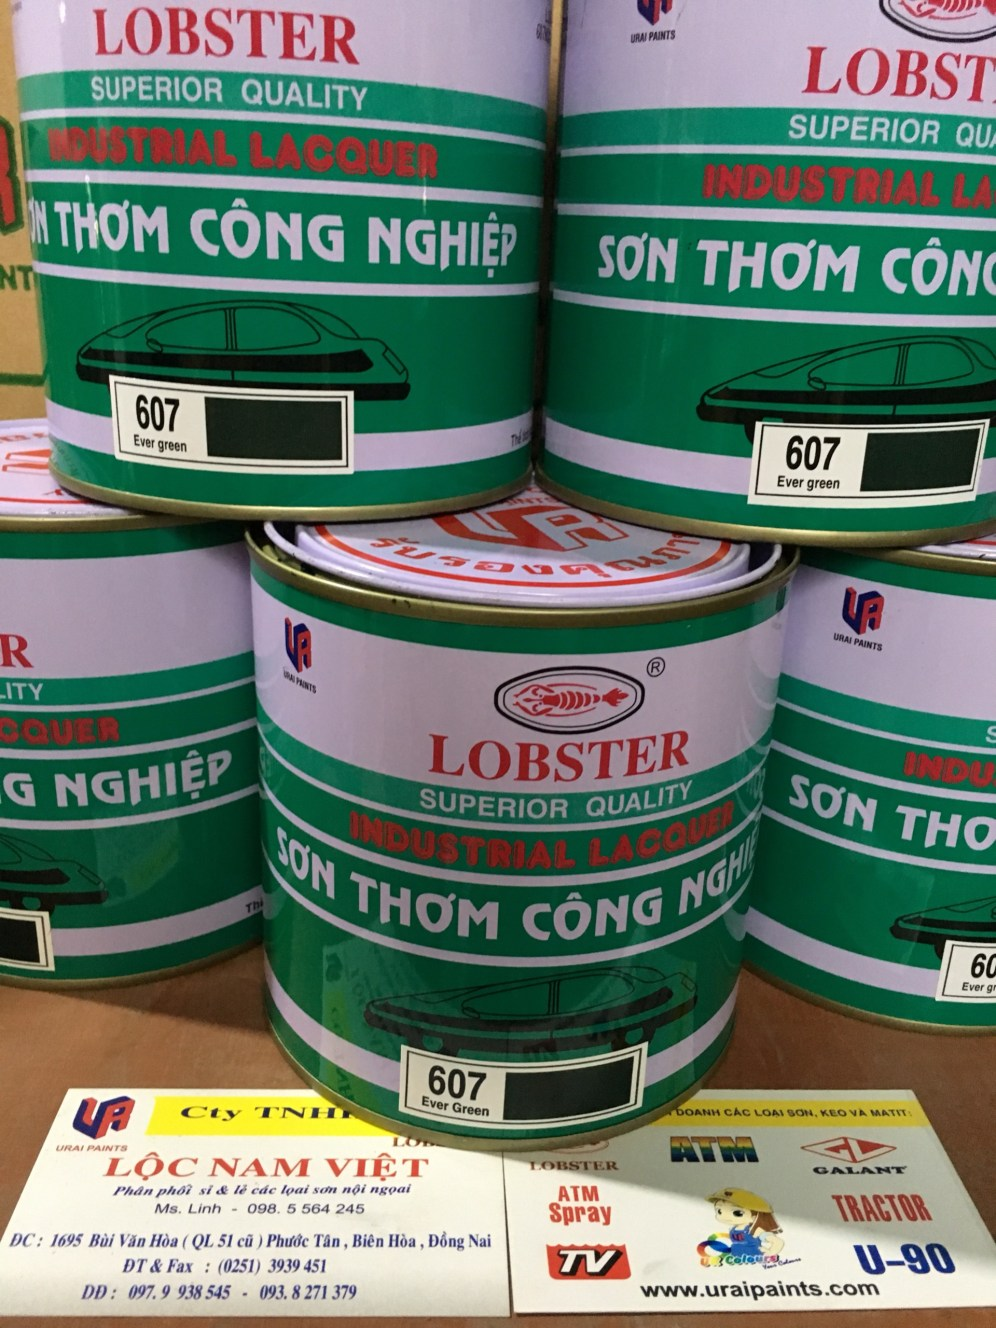 SON THOM CN LOBSTER 607 (6)